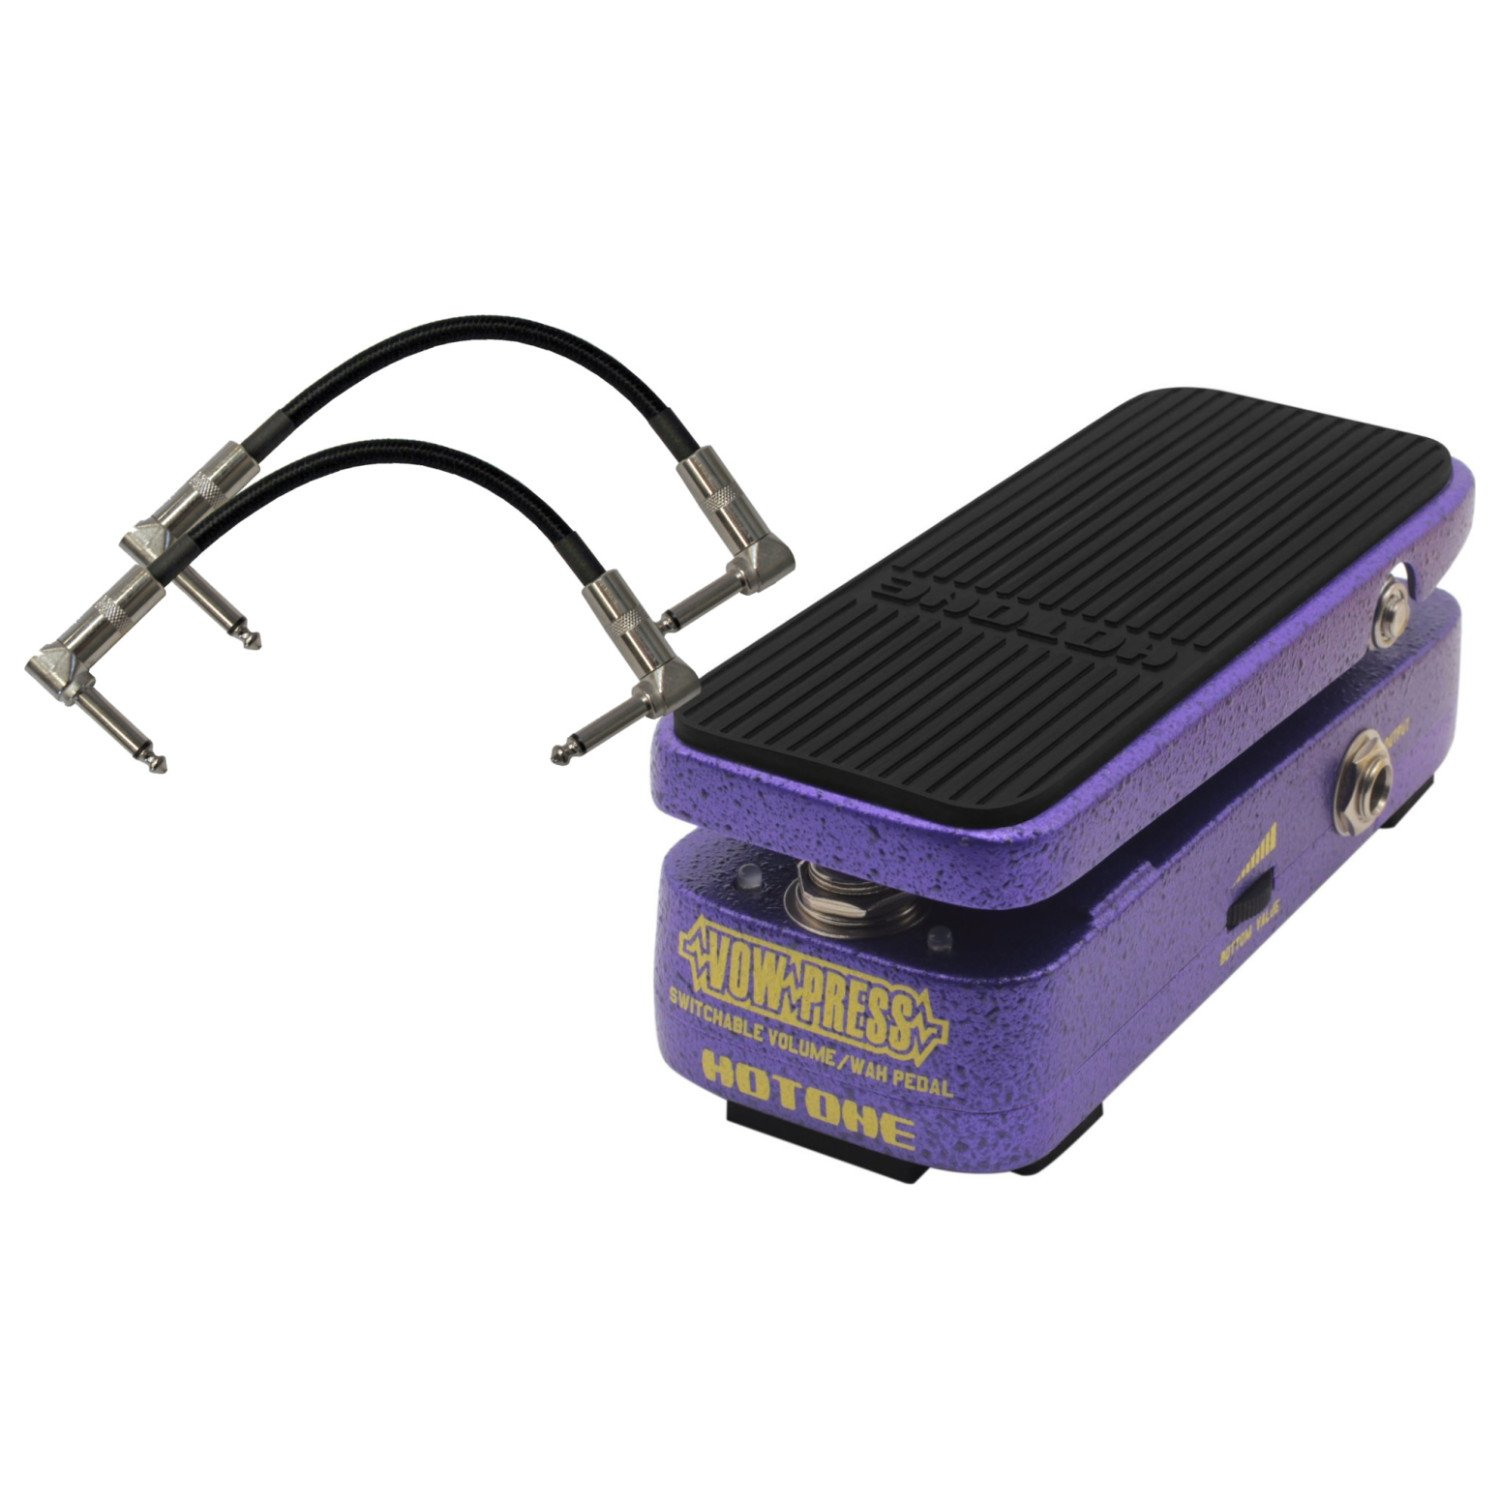 Hotone Vow Press True Bypass Switchable 3 in 1 Guitar Effects Pedal (Volume, Wah,Vol/Wah) with Cool LED lights and Active Volume for Lossless Tone with 2 Patch Cables